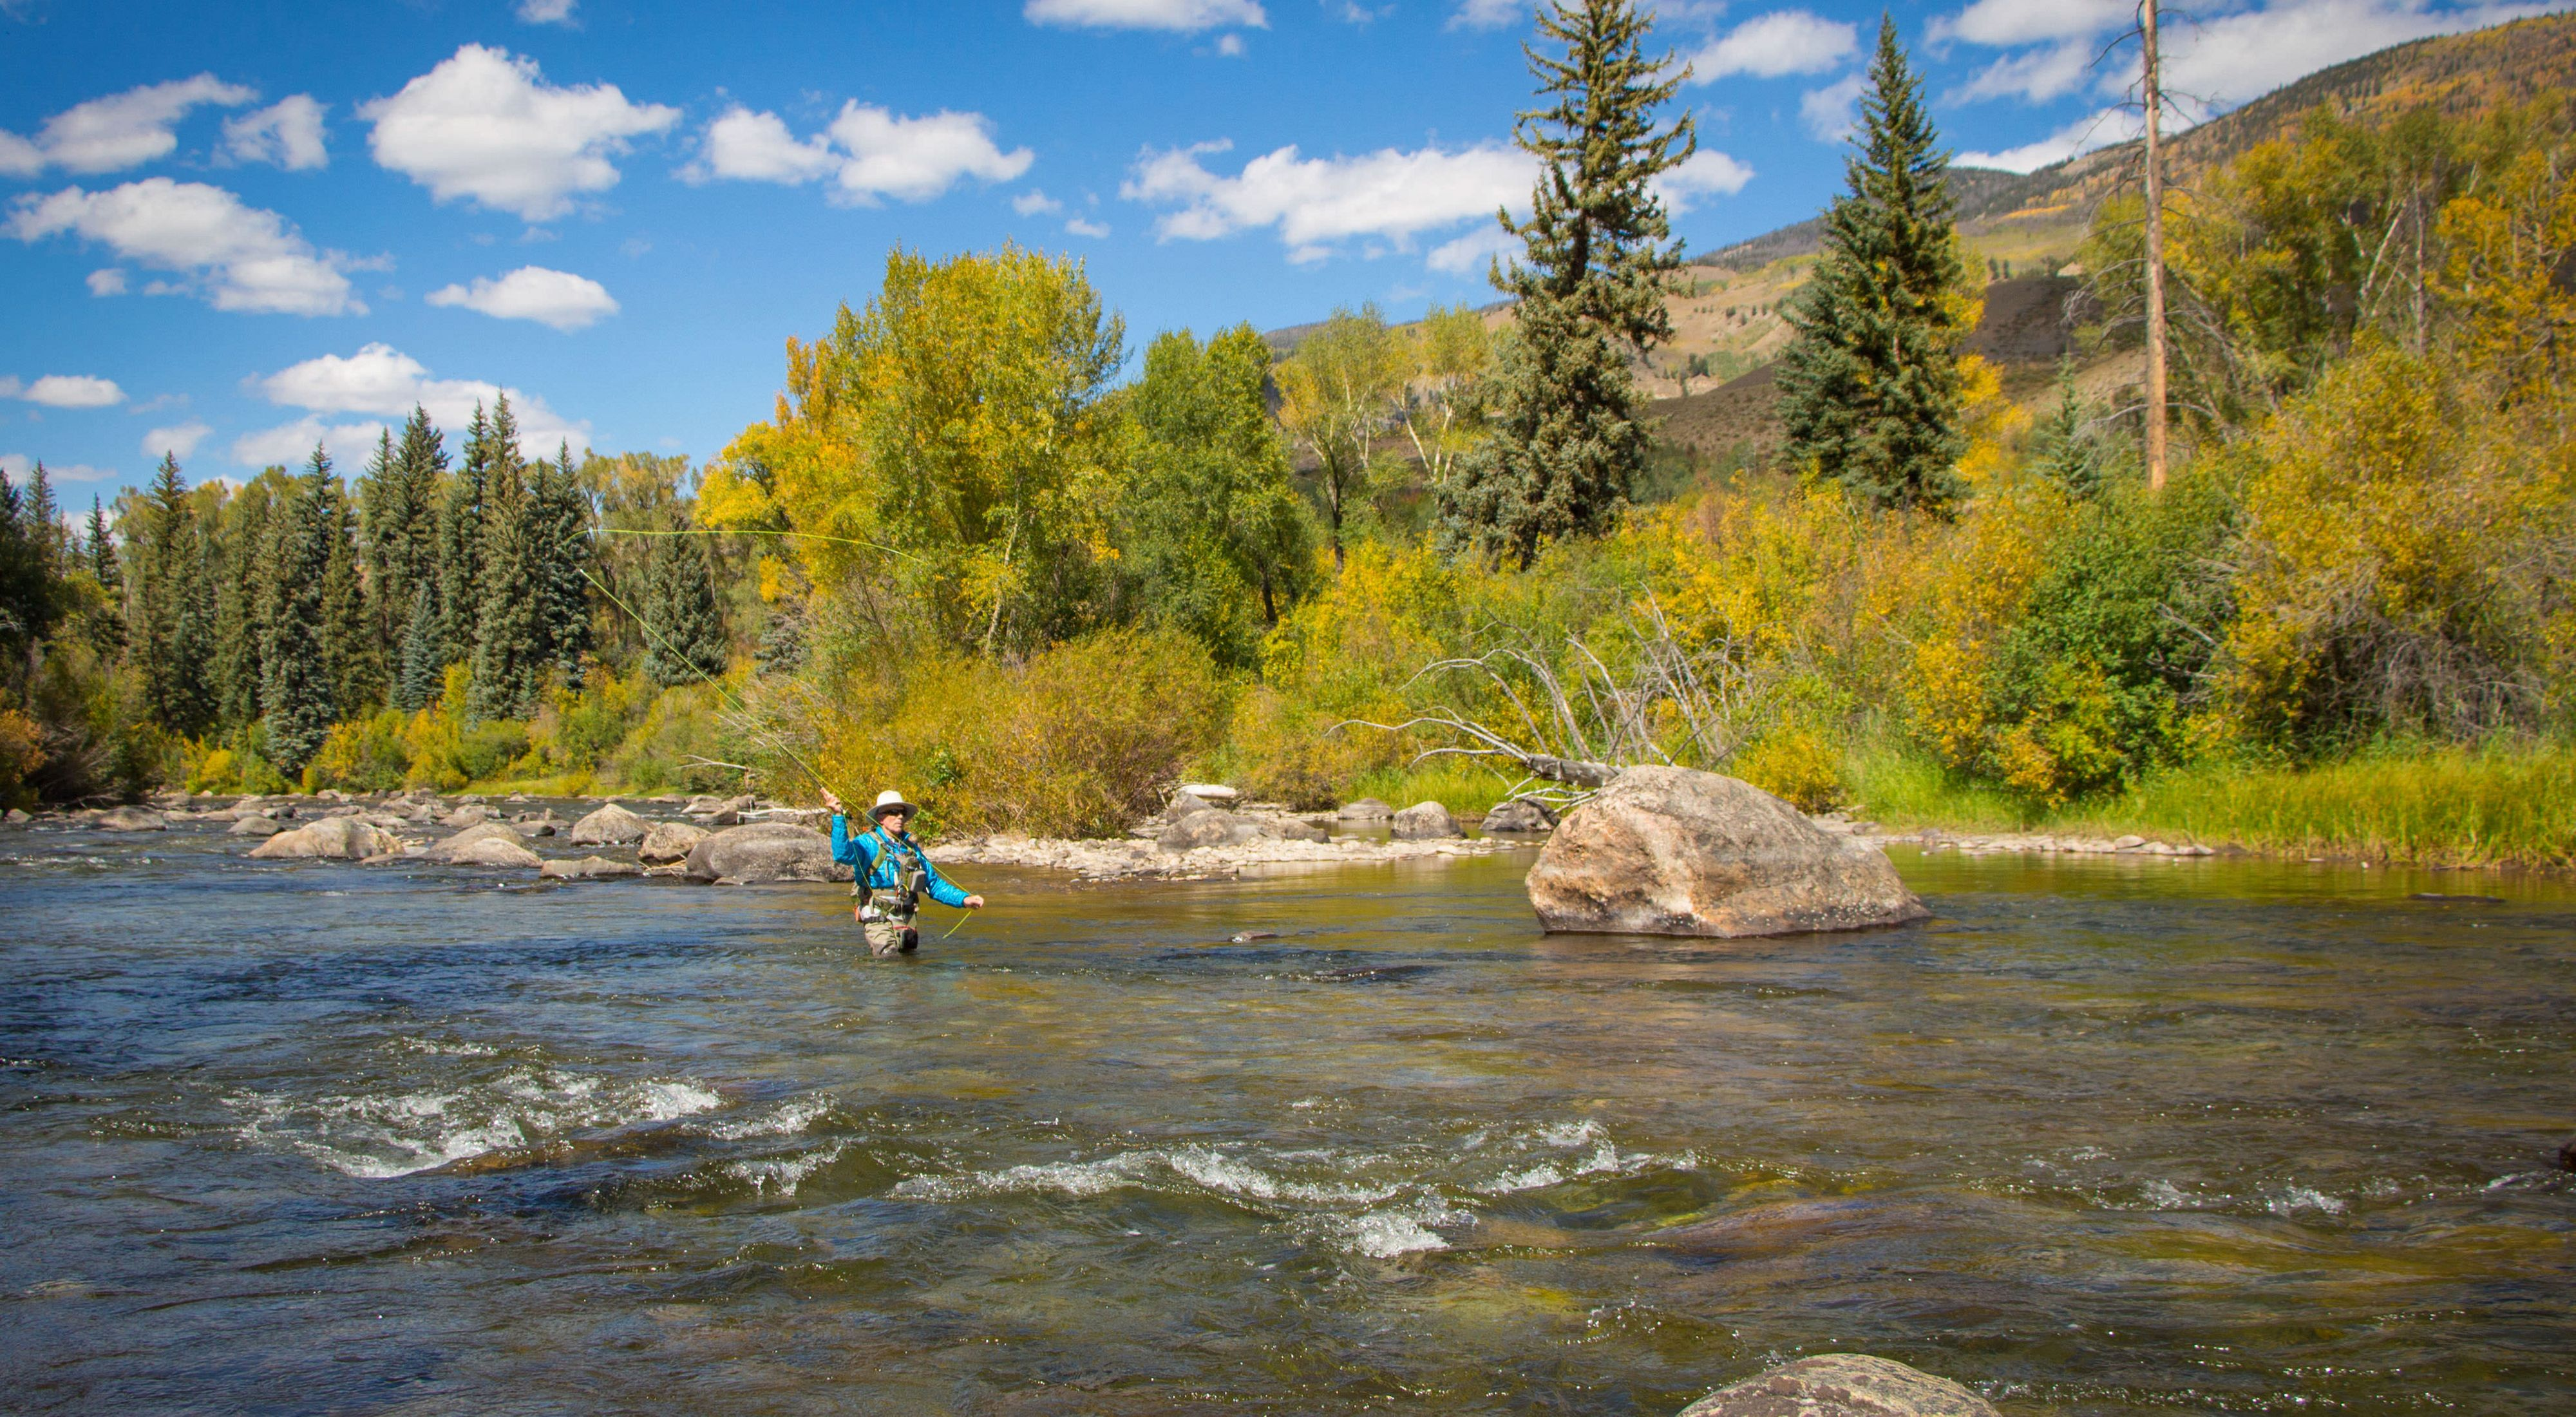 Fishing the Blue River in Summit County, Colorado.